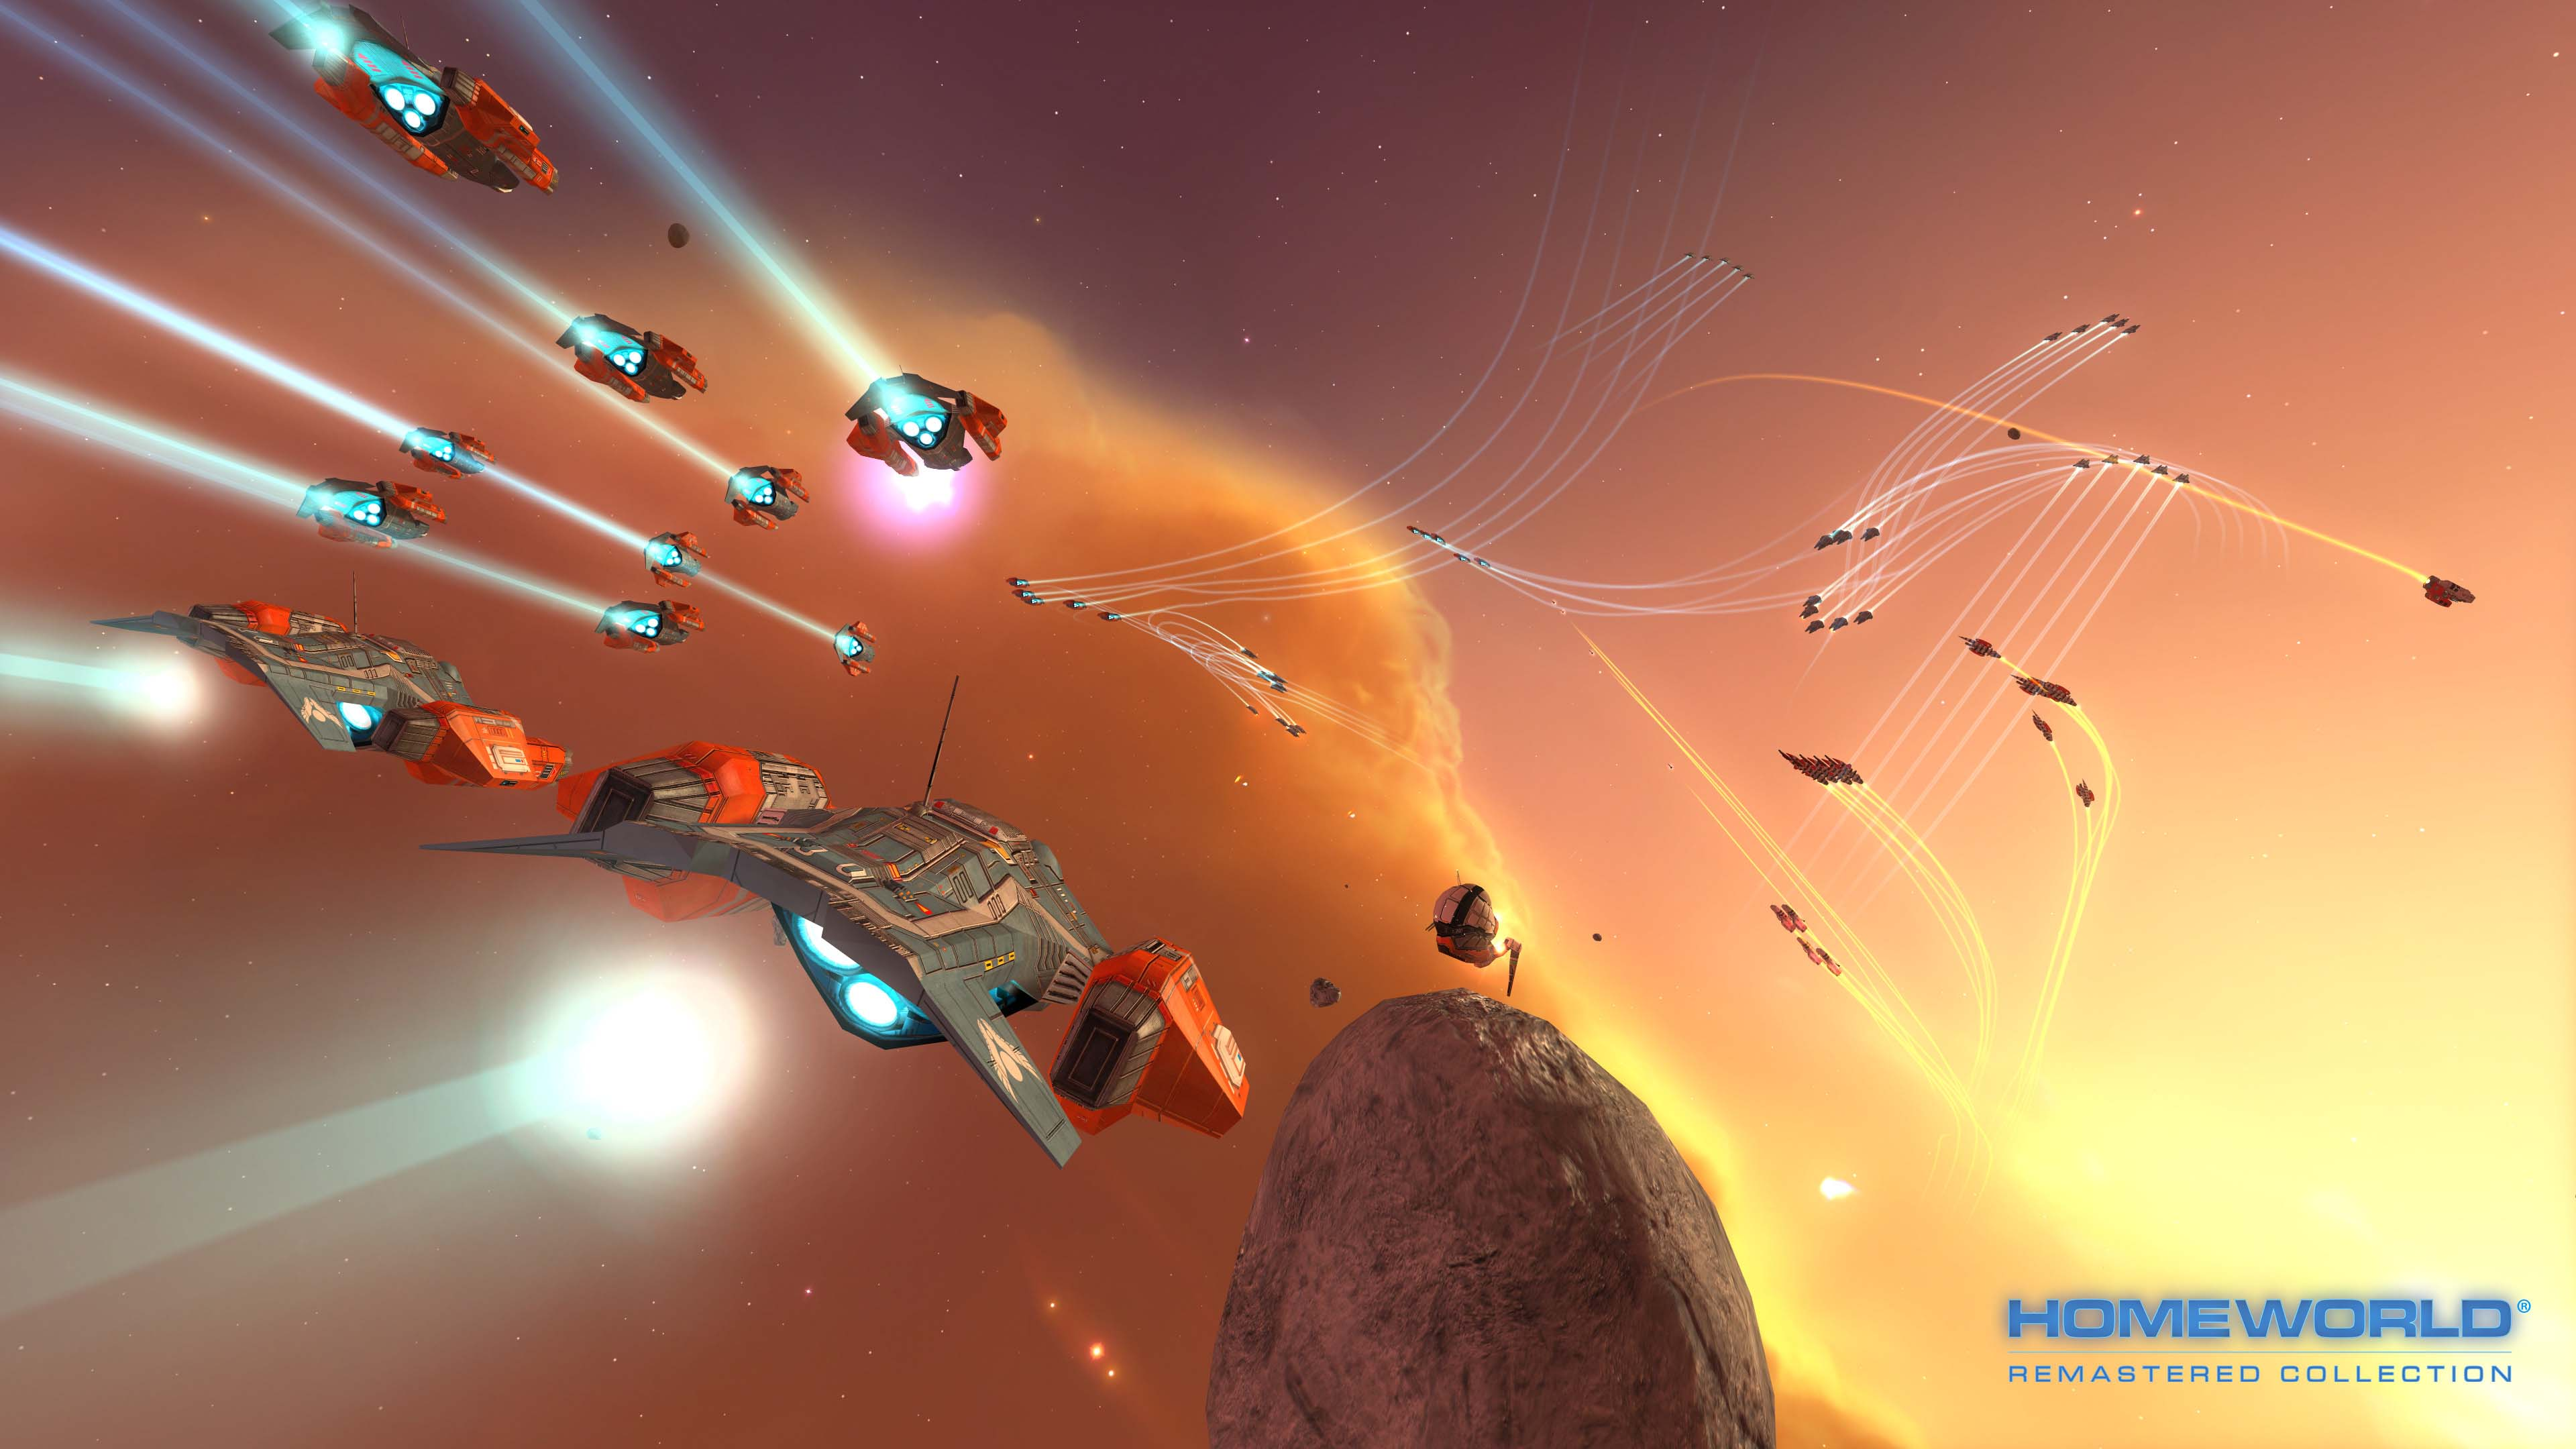 homeworld-remastered-collection-05